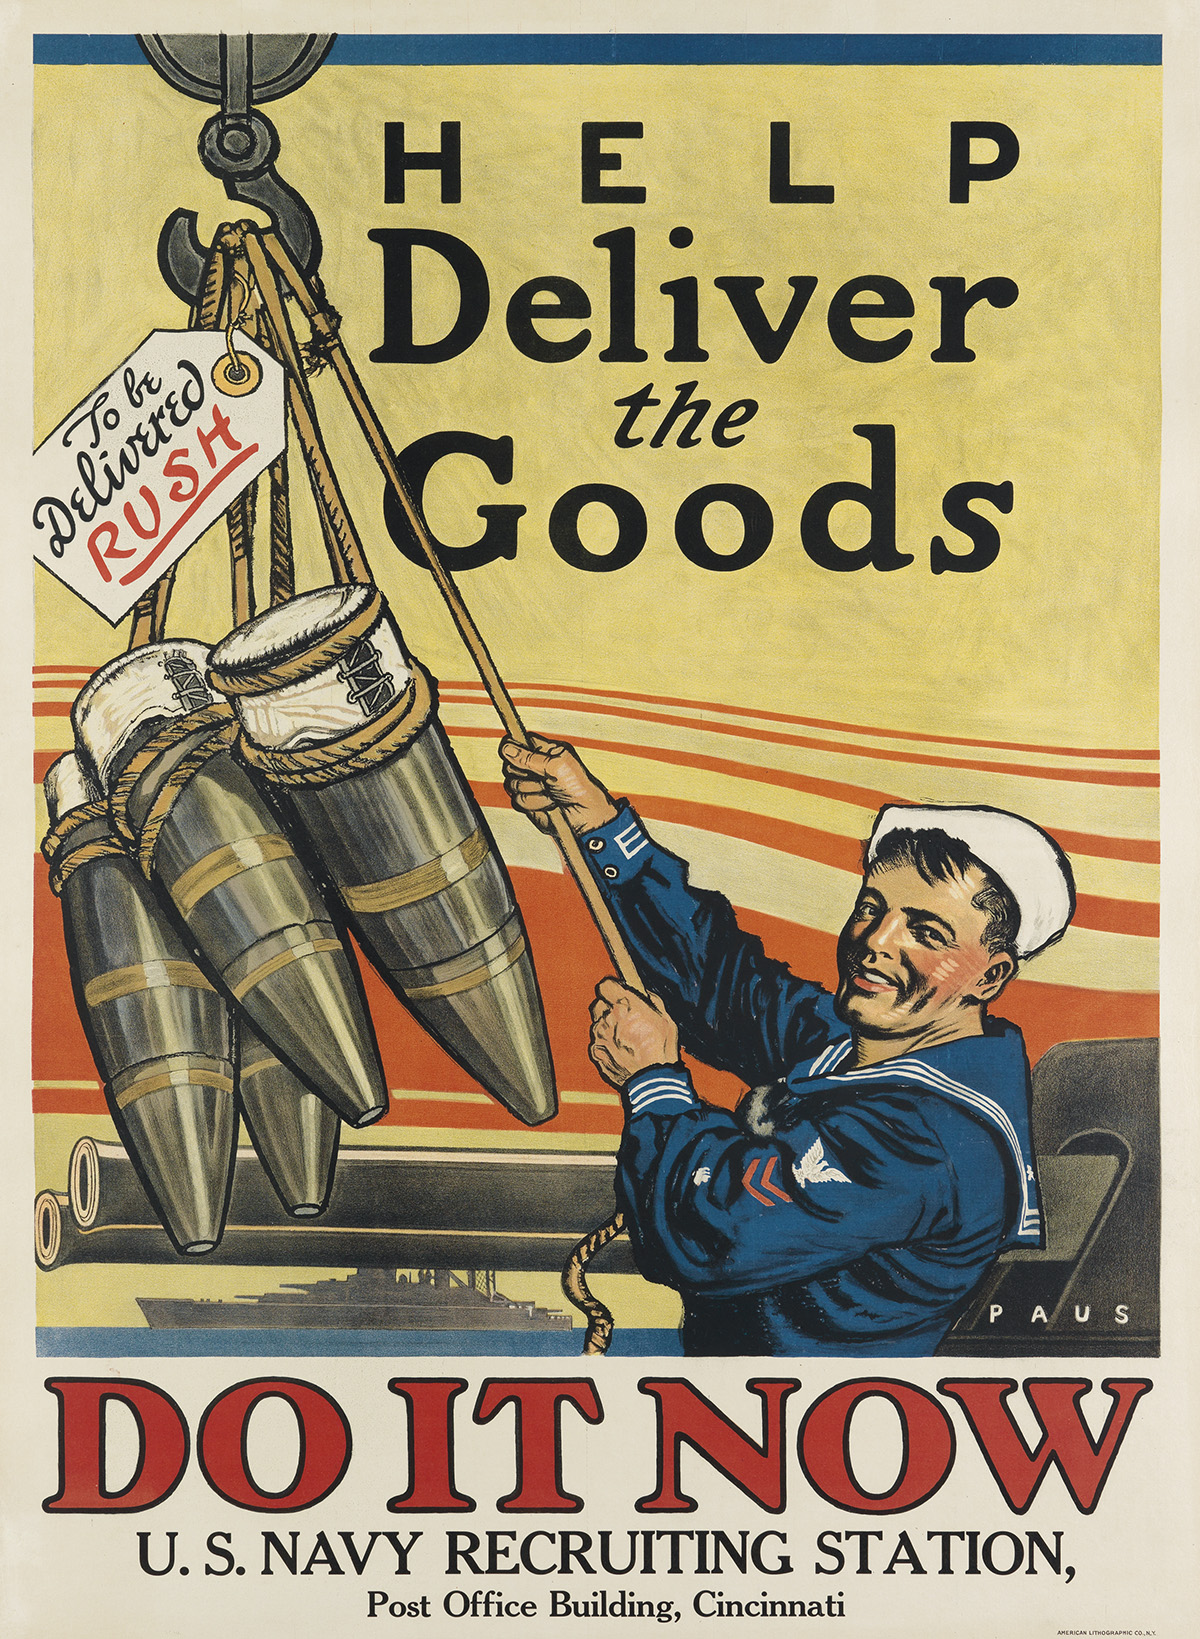 HERBERT-ANDREW-PAUS-(1880-1946)-HELP-DELIVER-THE-GOODS--DO-I